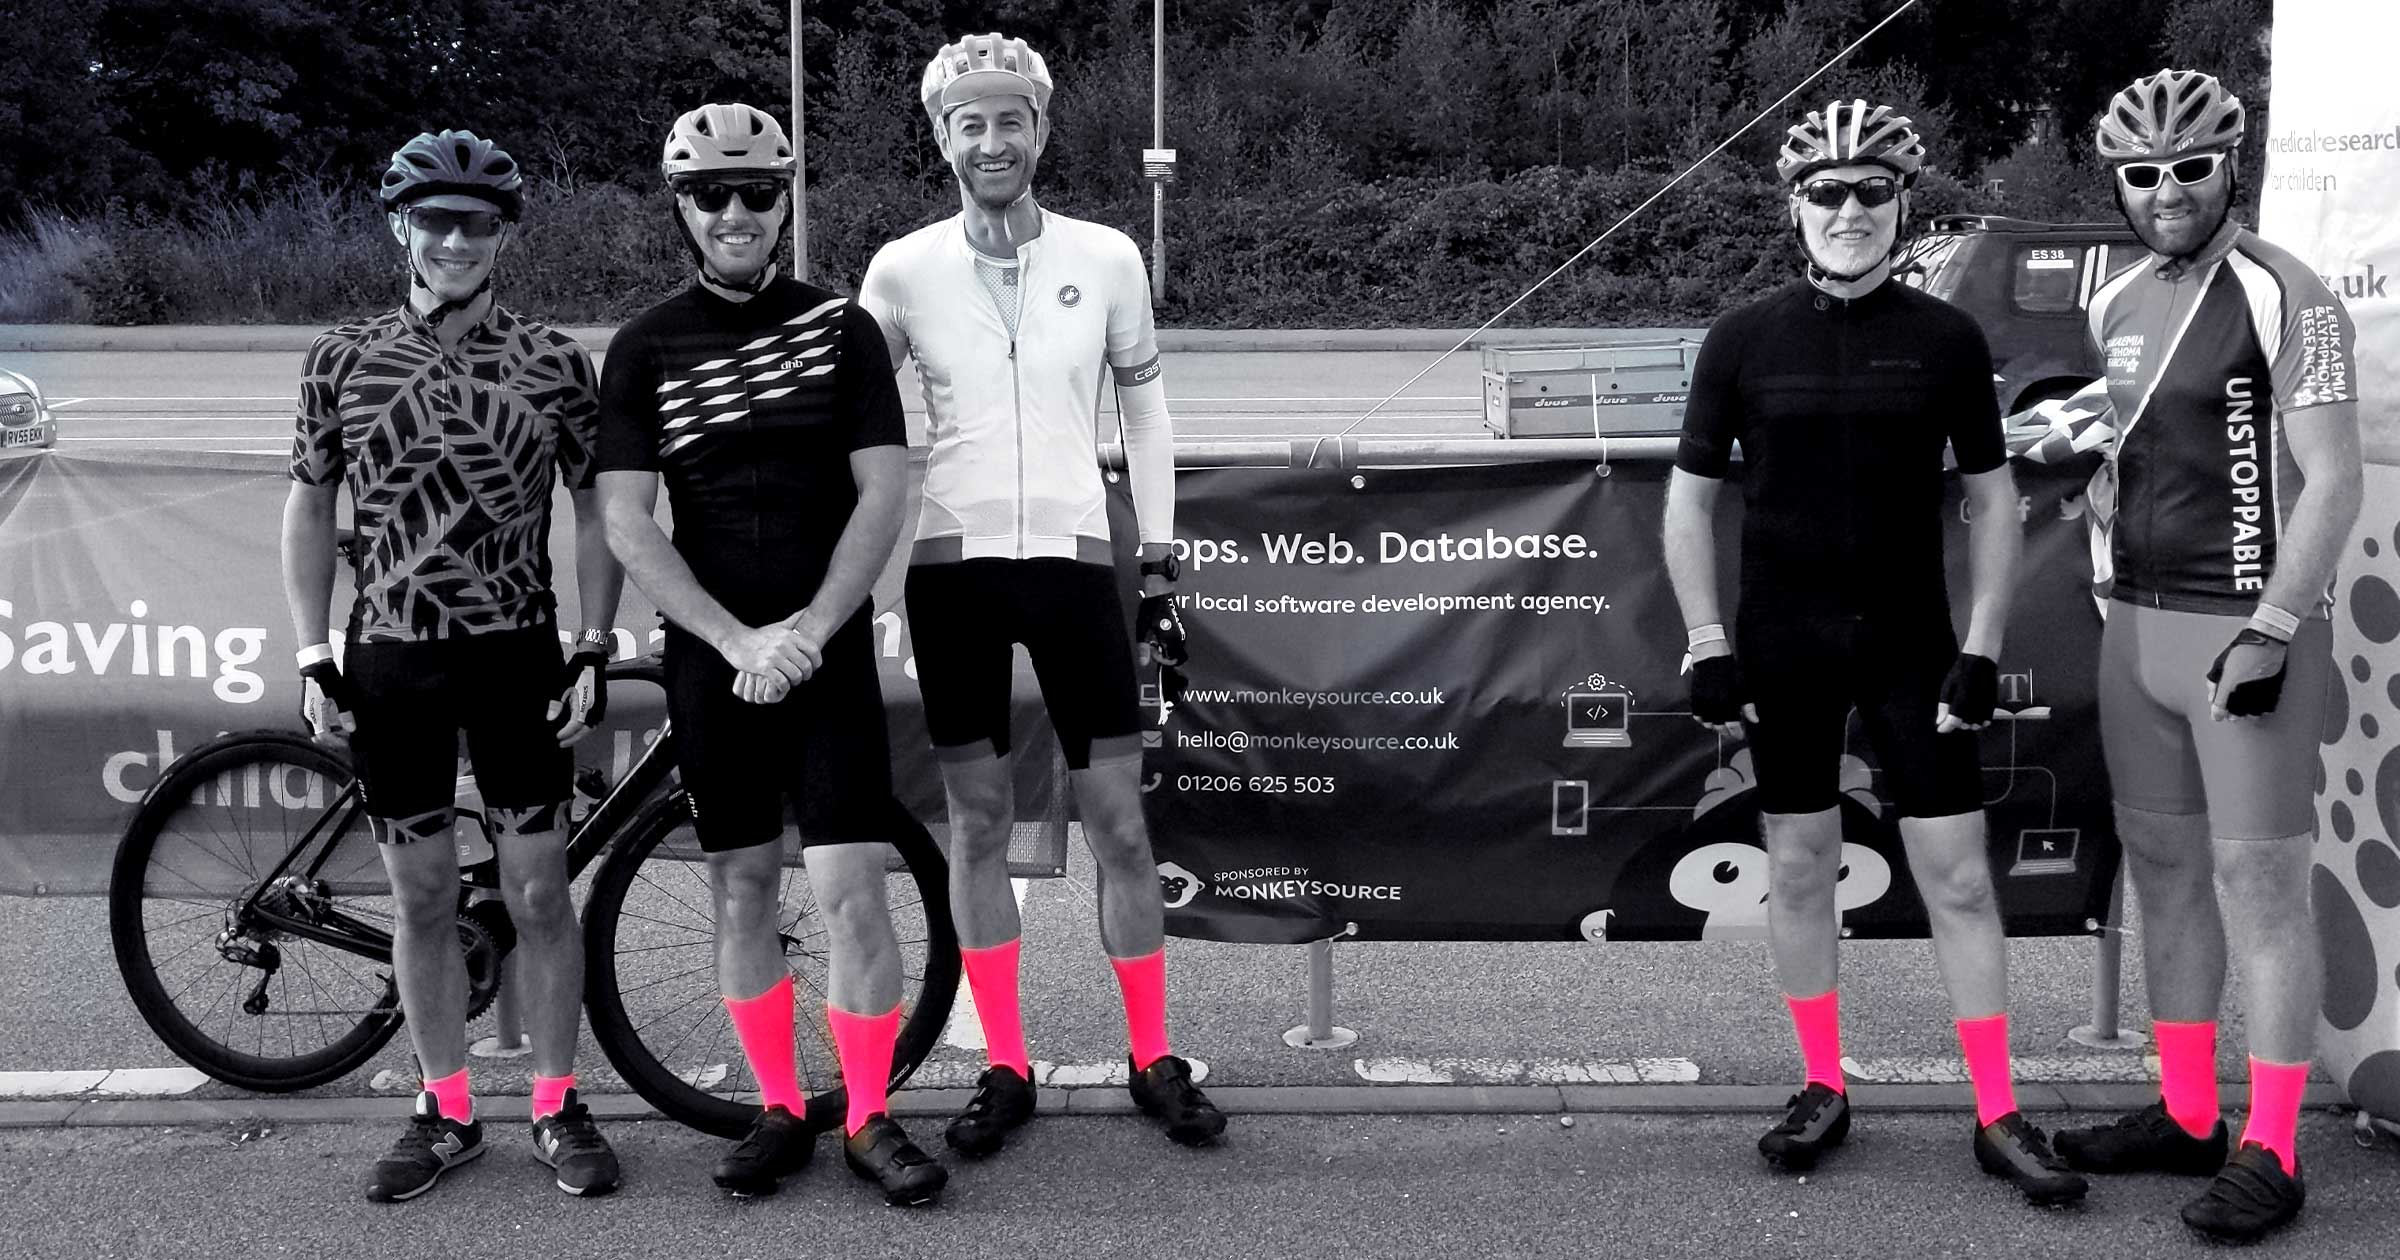 An image showing the team before the race, wearing pink socks